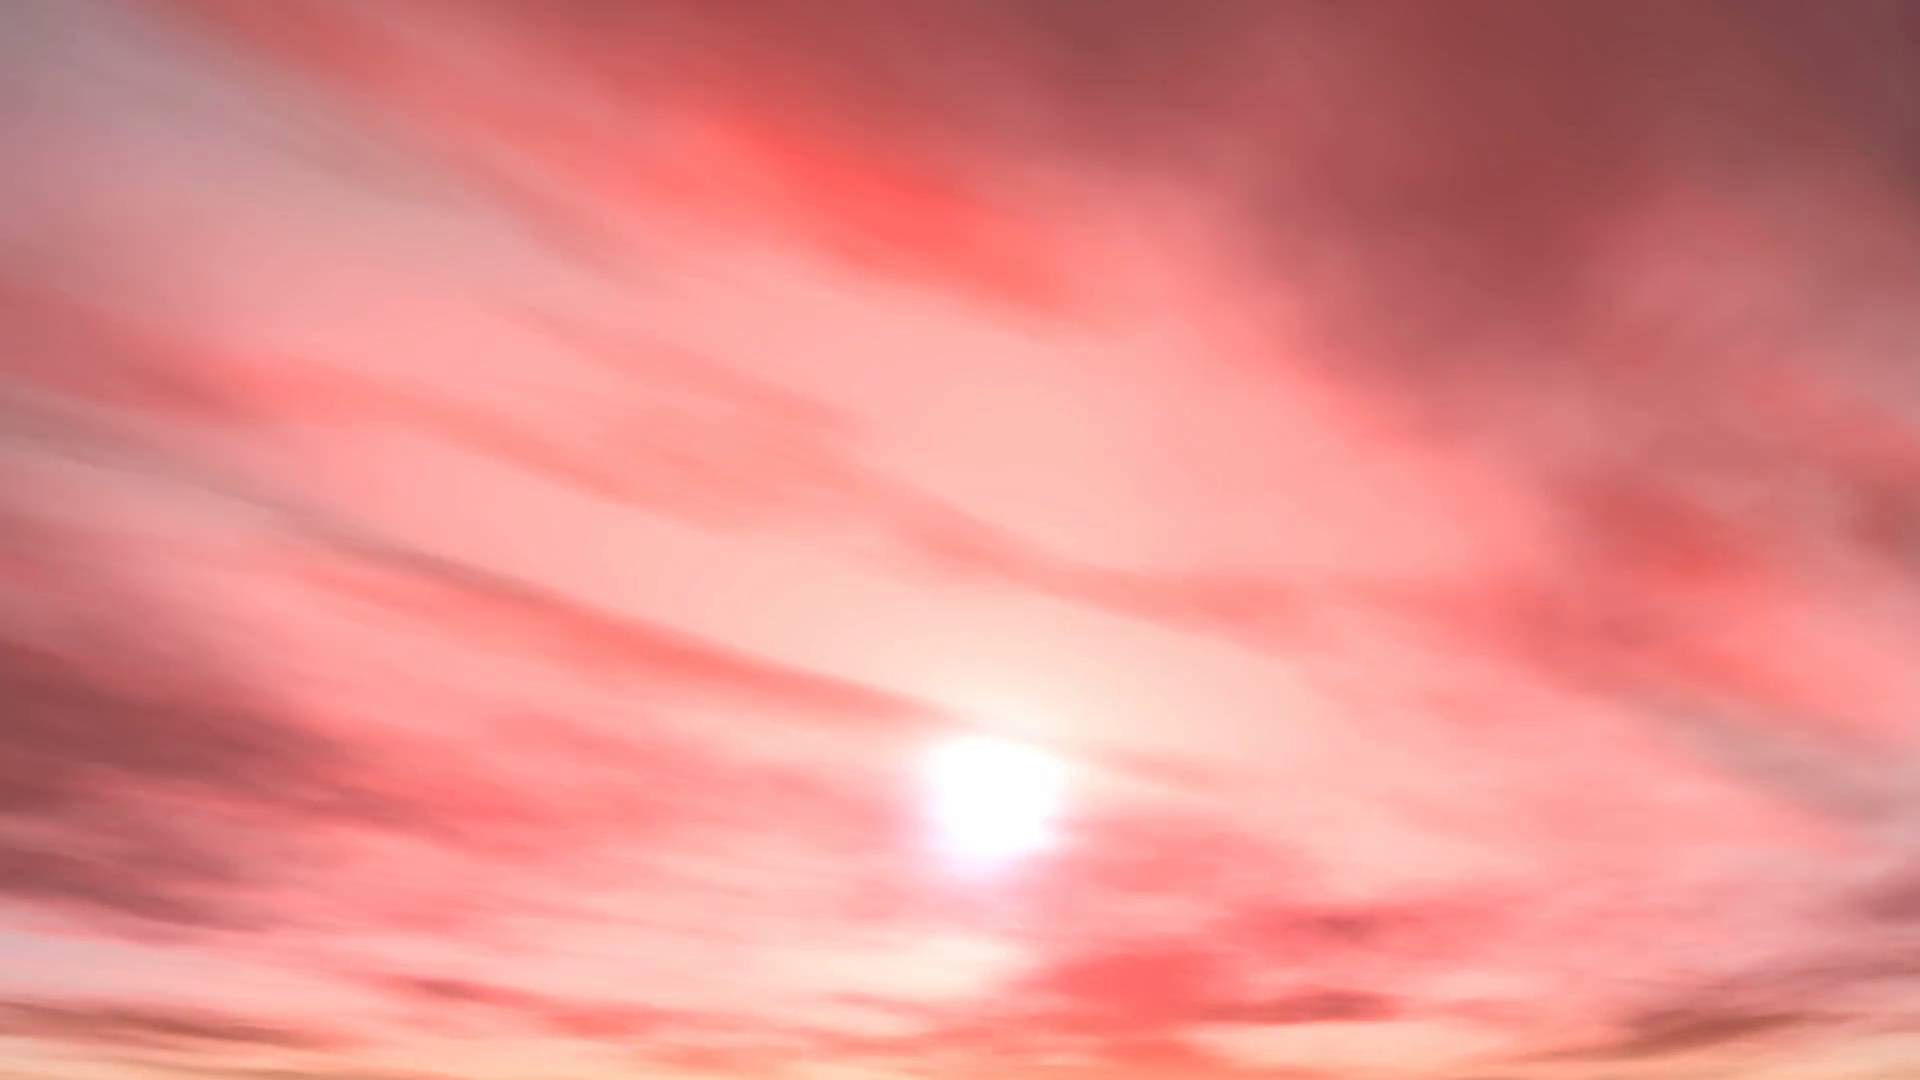 Pink cloudy sunset sky speed clouds Motion Background - Videoblocks